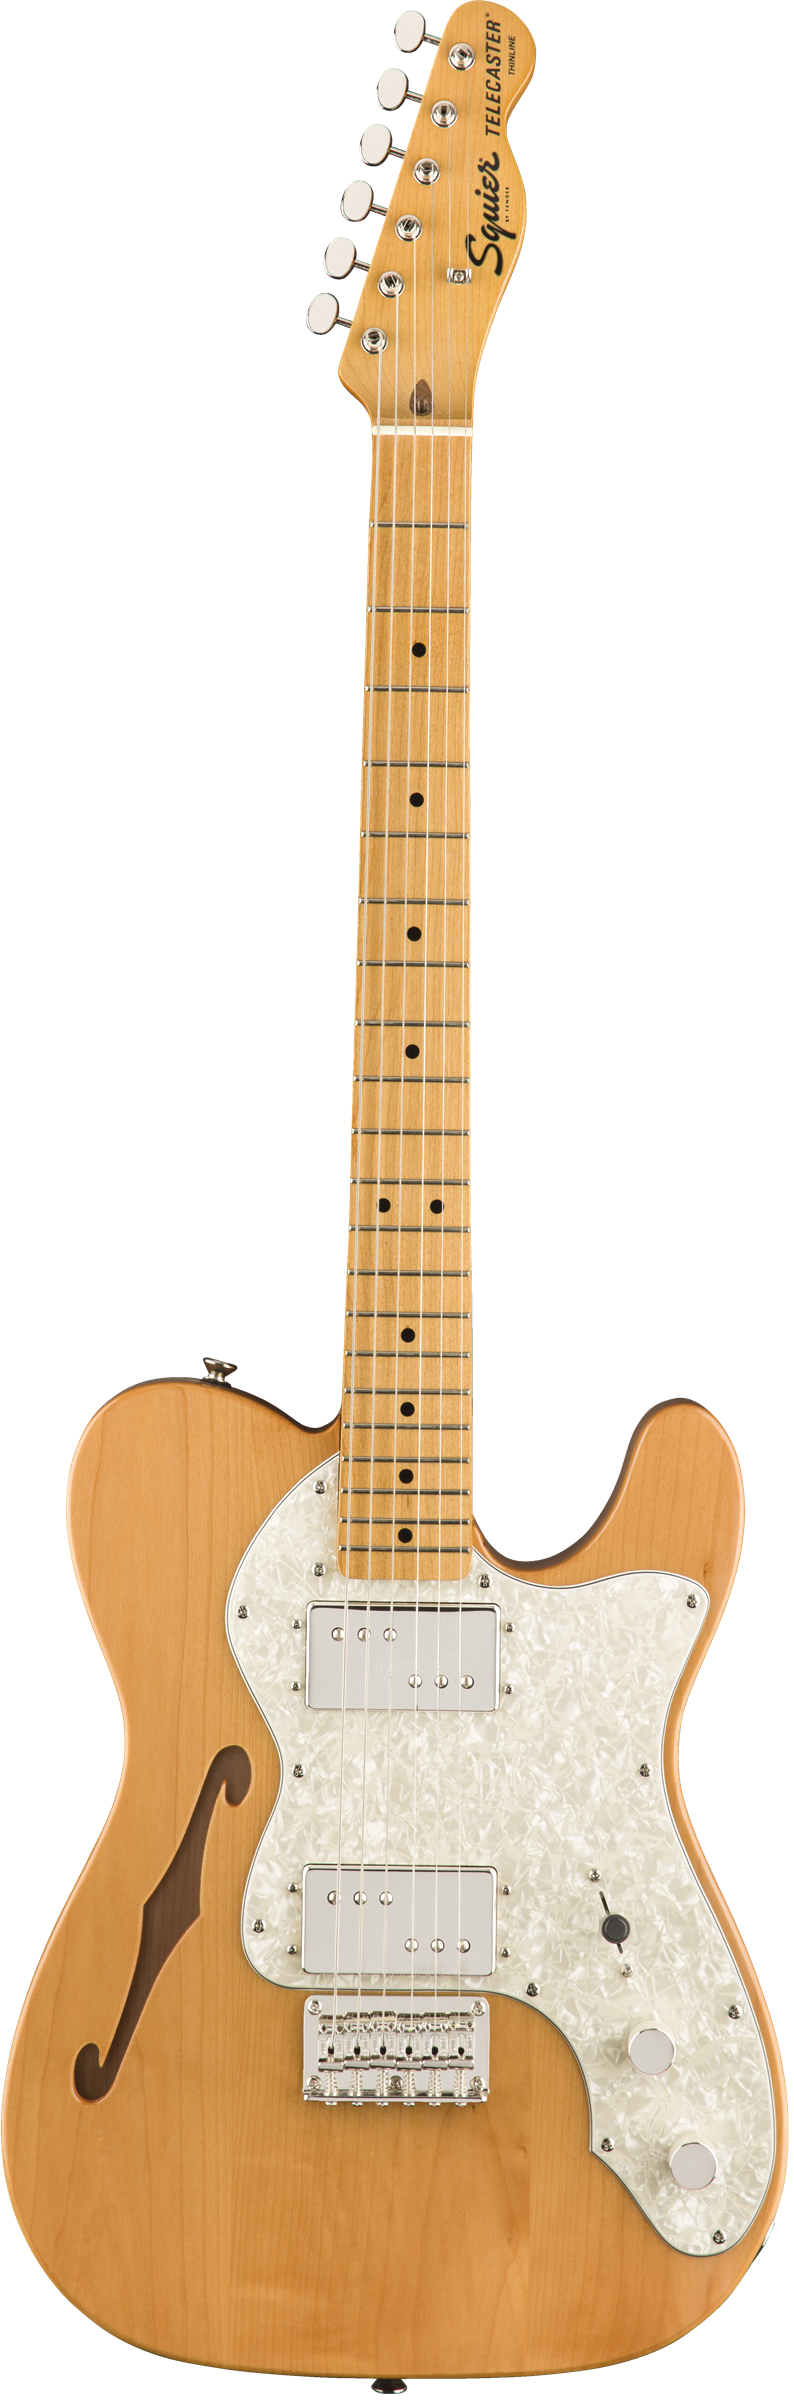 Squier Classic Vibe '70S Telecaster Thinline Electric Guitar